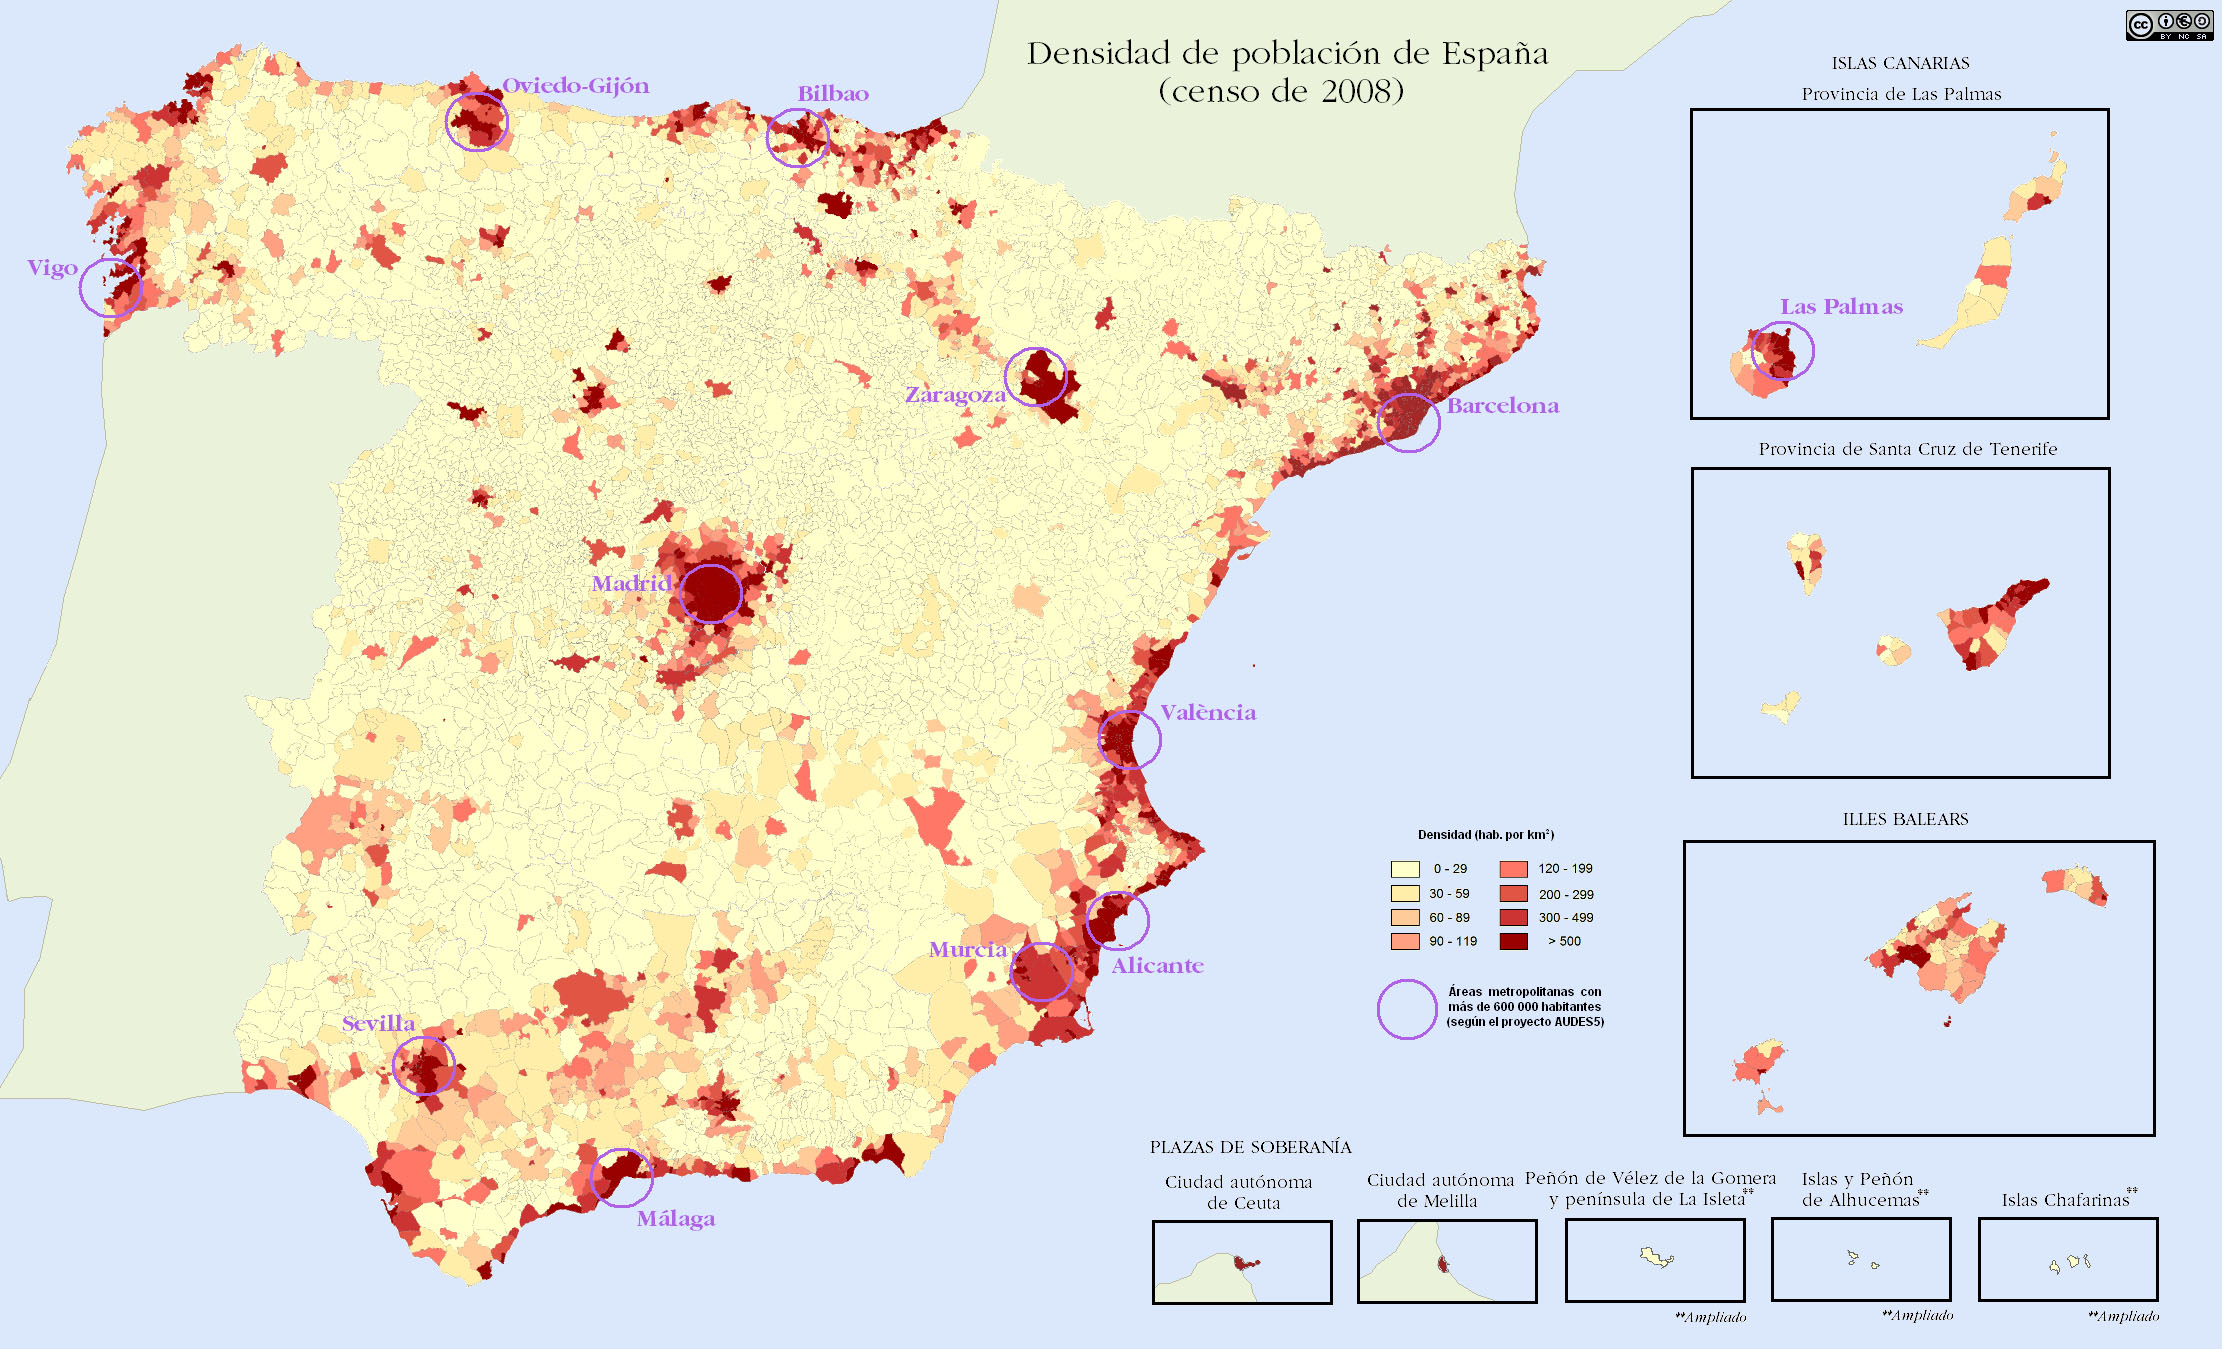 Spain Population Map 2008 large map